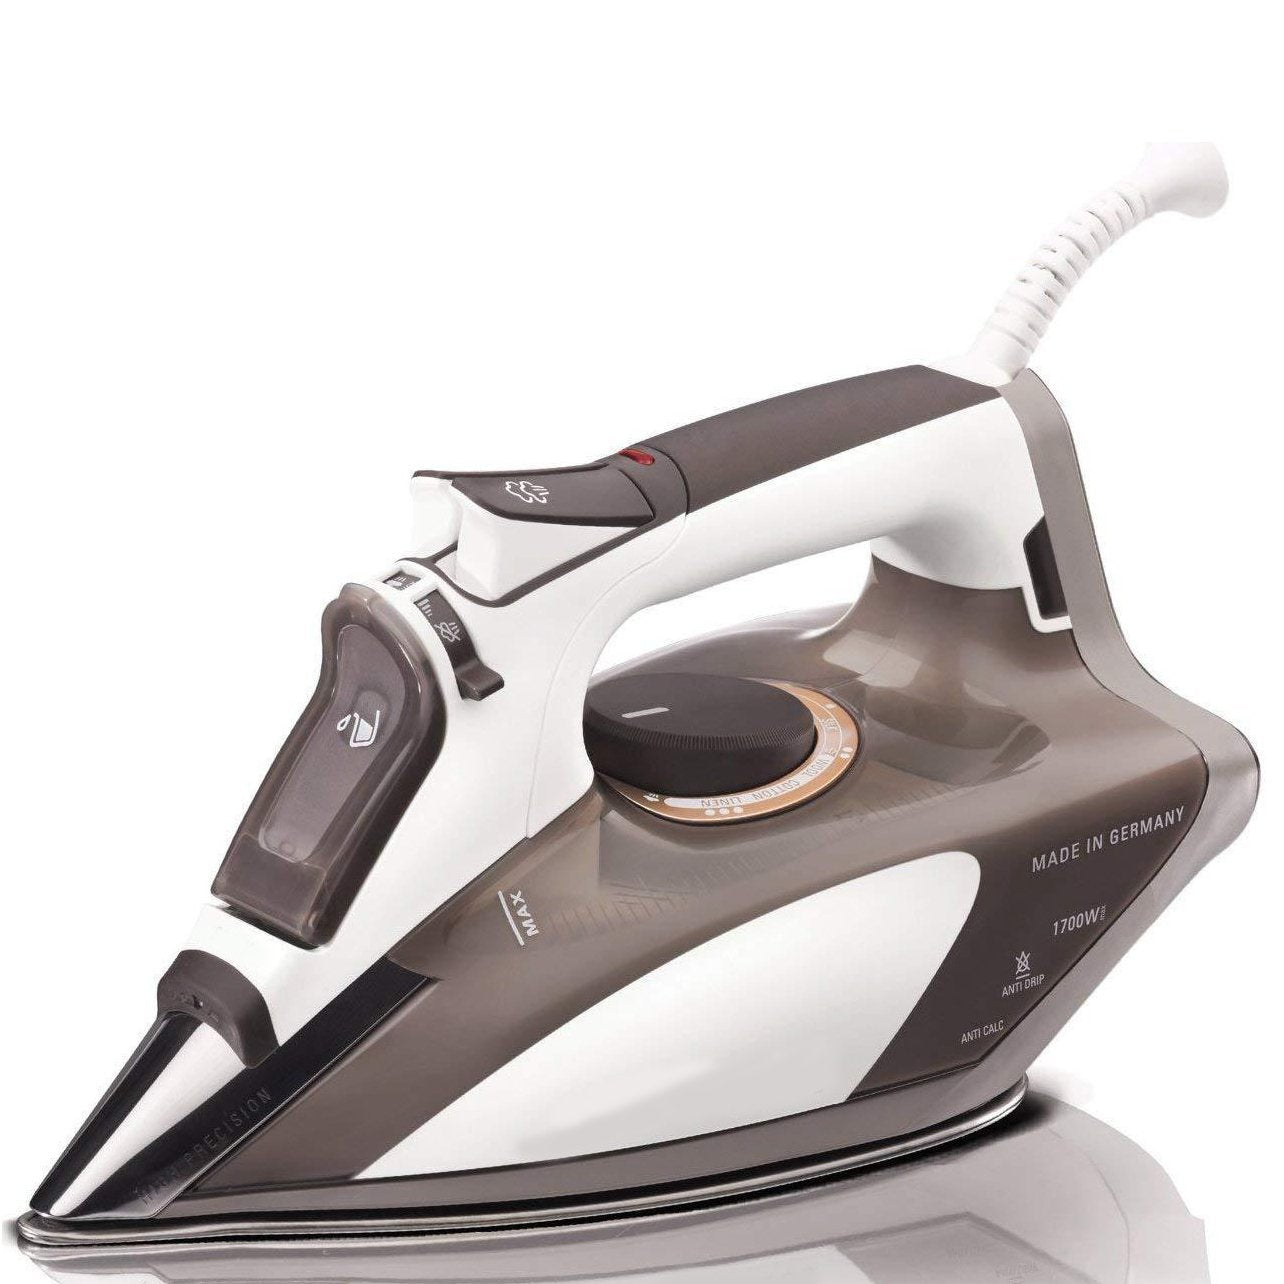 1700-Watt Micro Steam Iron Stainless Steel Soleplate